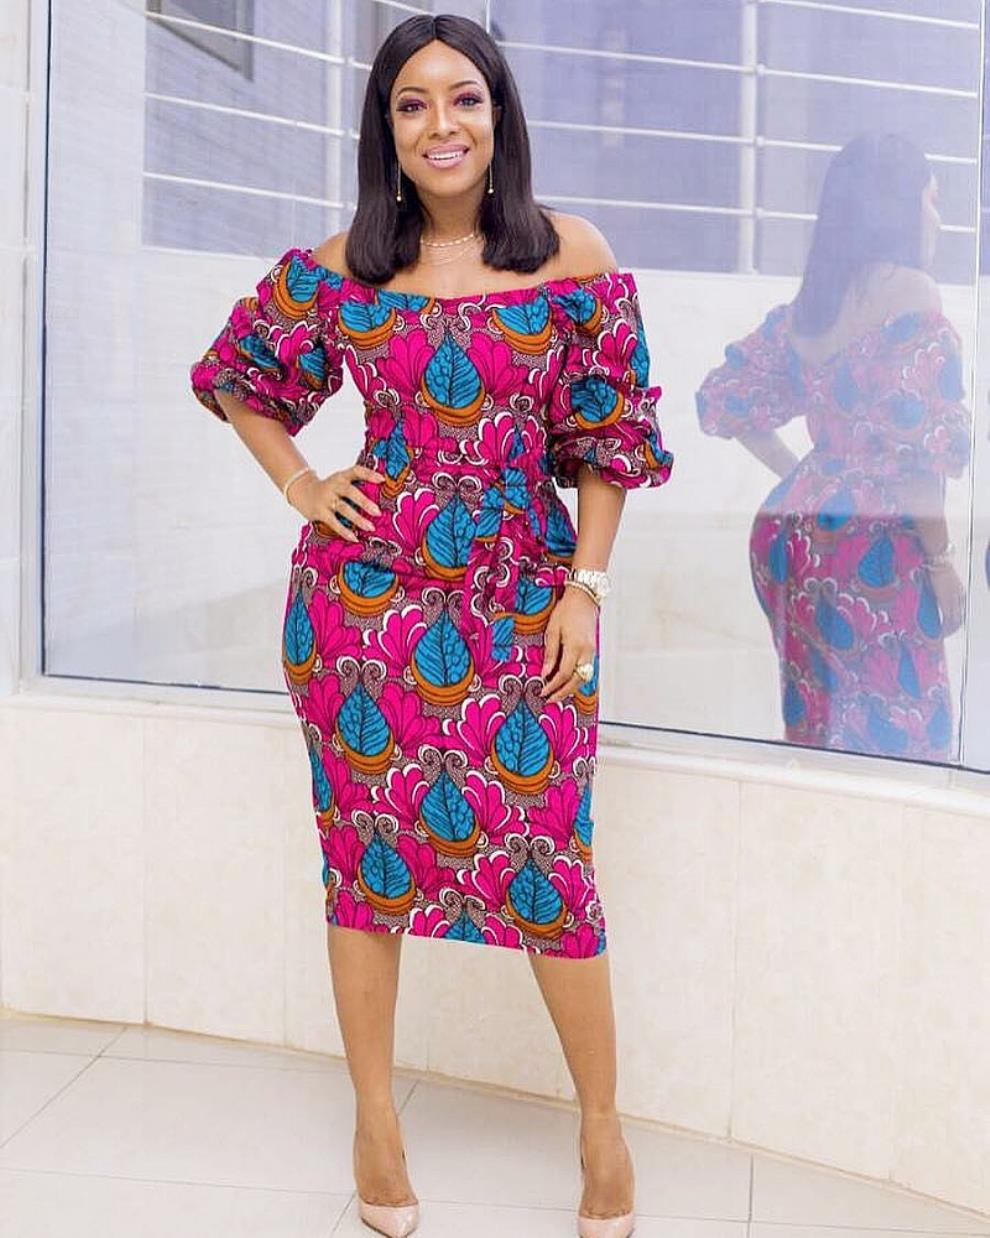 Joselyn Dumas Denies Dating John Dumelo Rumours